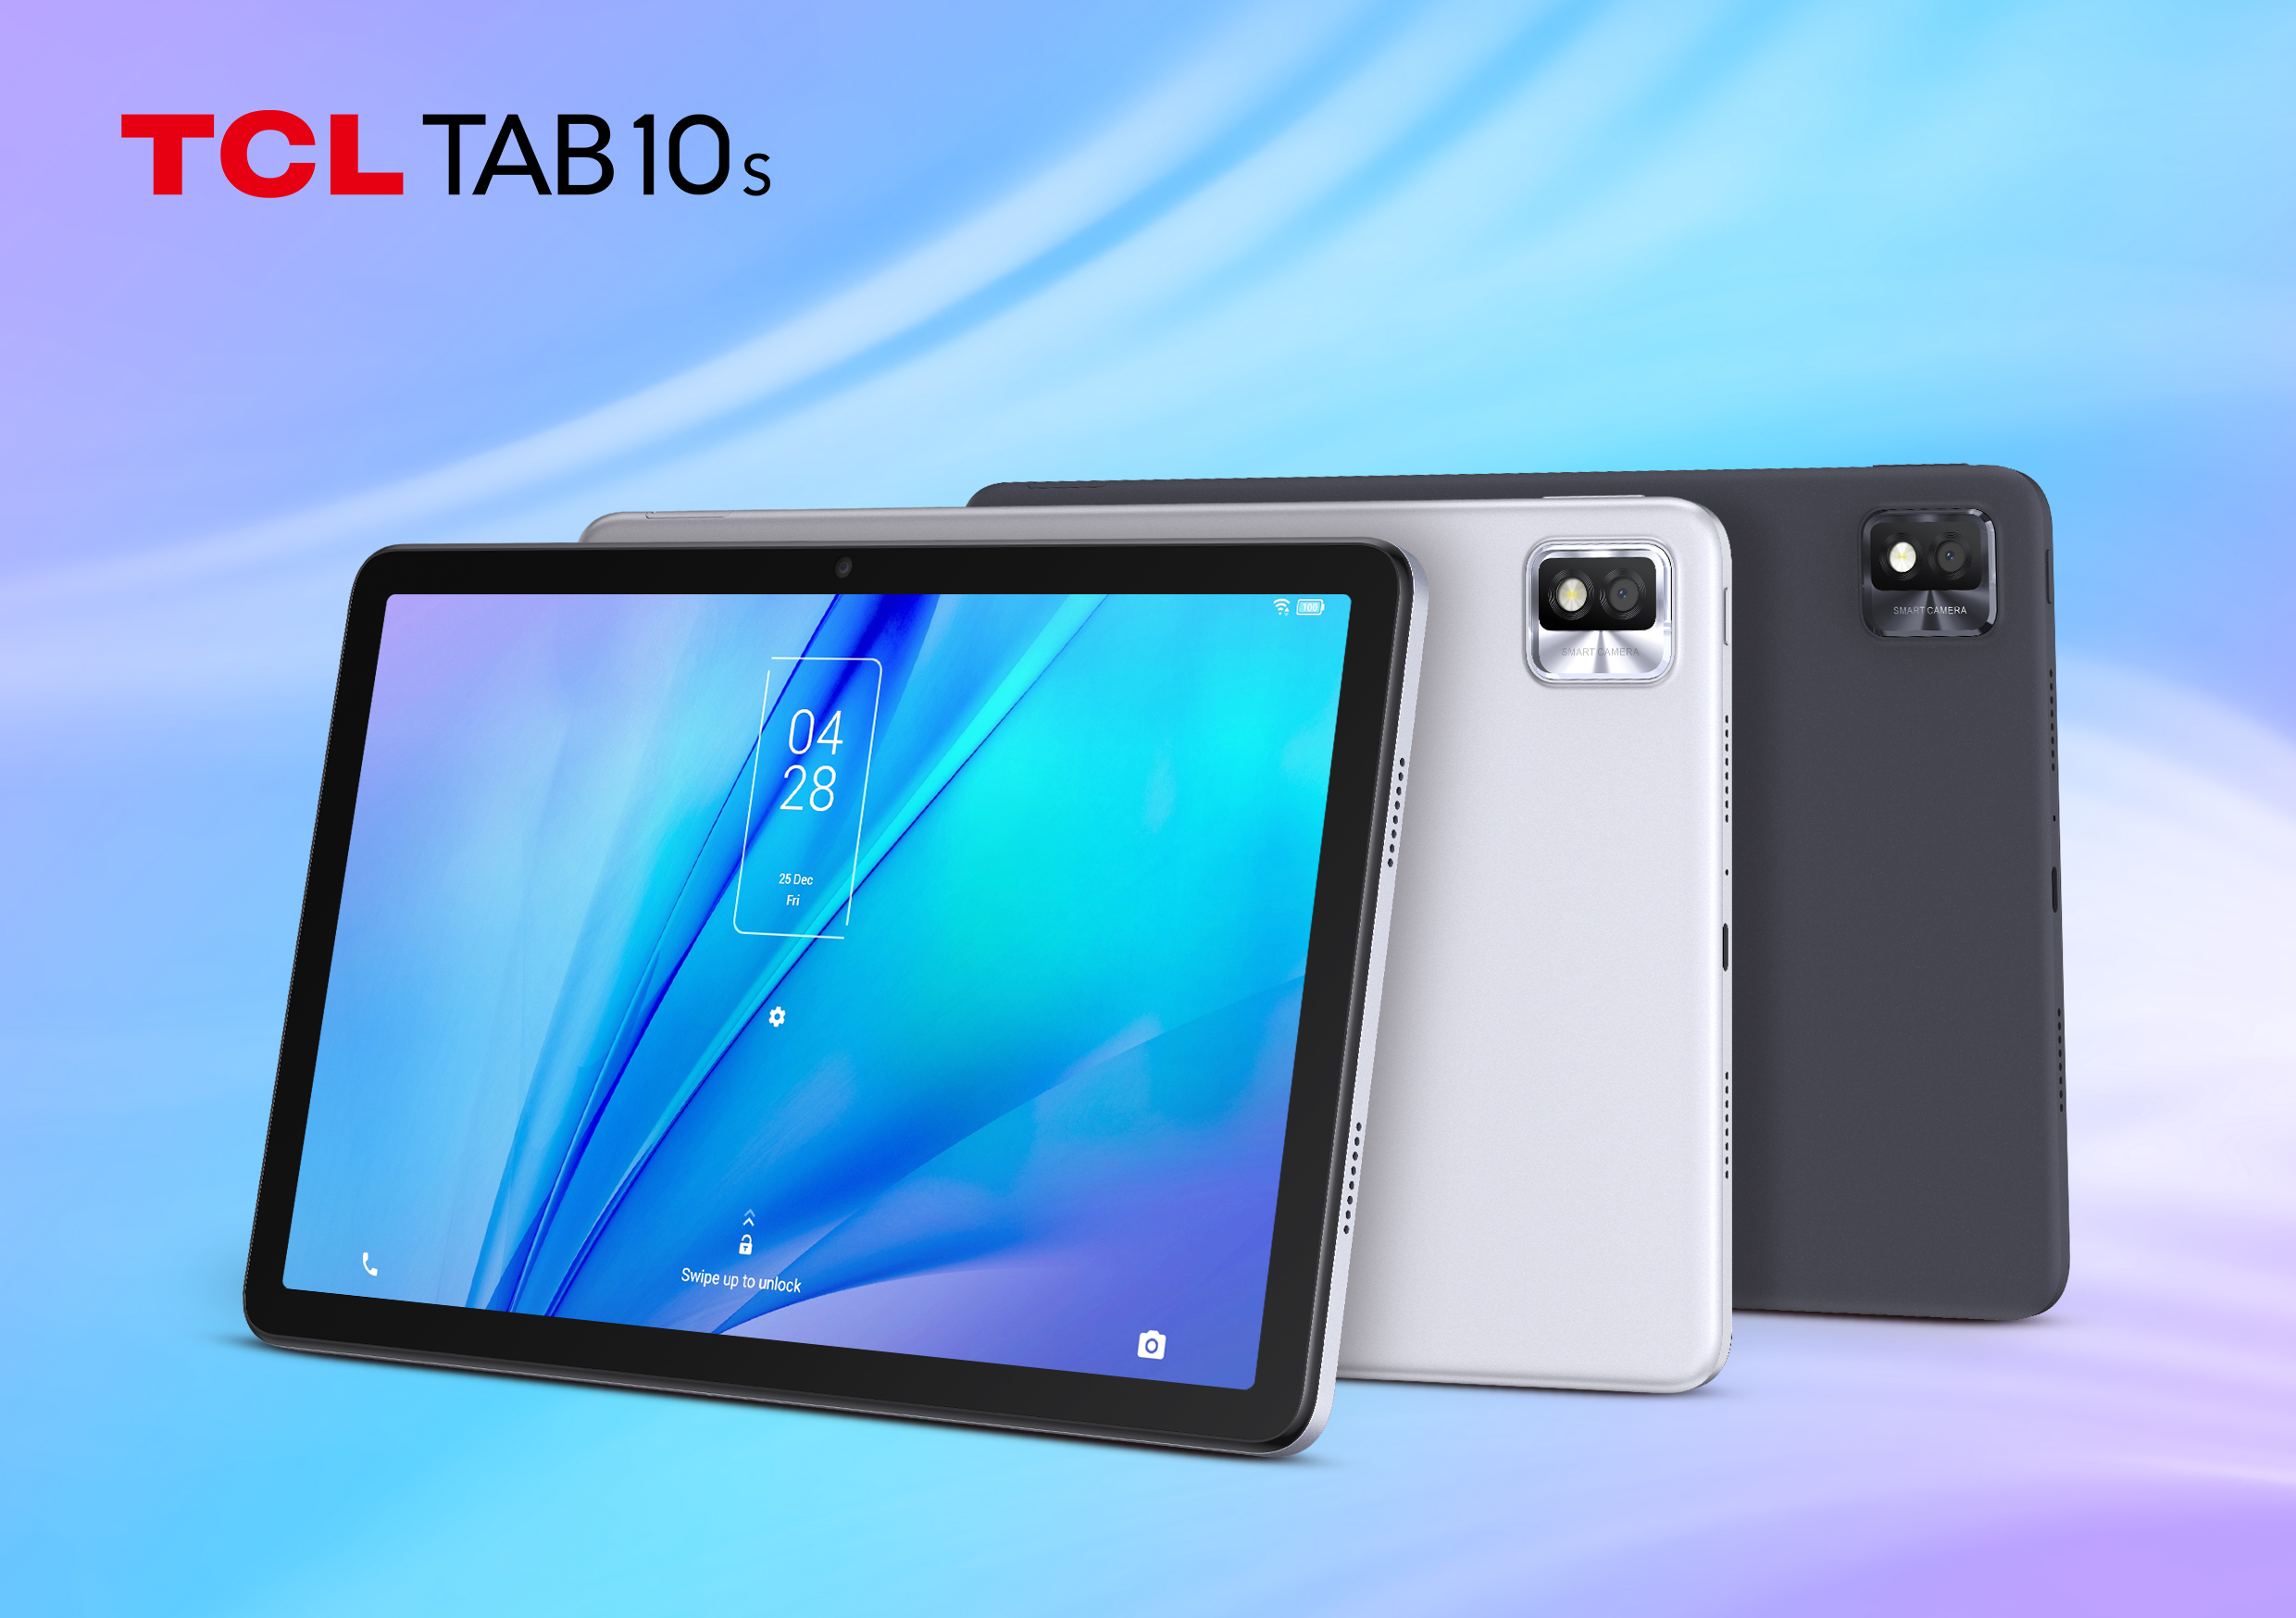 TCL TAB 10S Android tablet in Silver and Dark Grey colorways